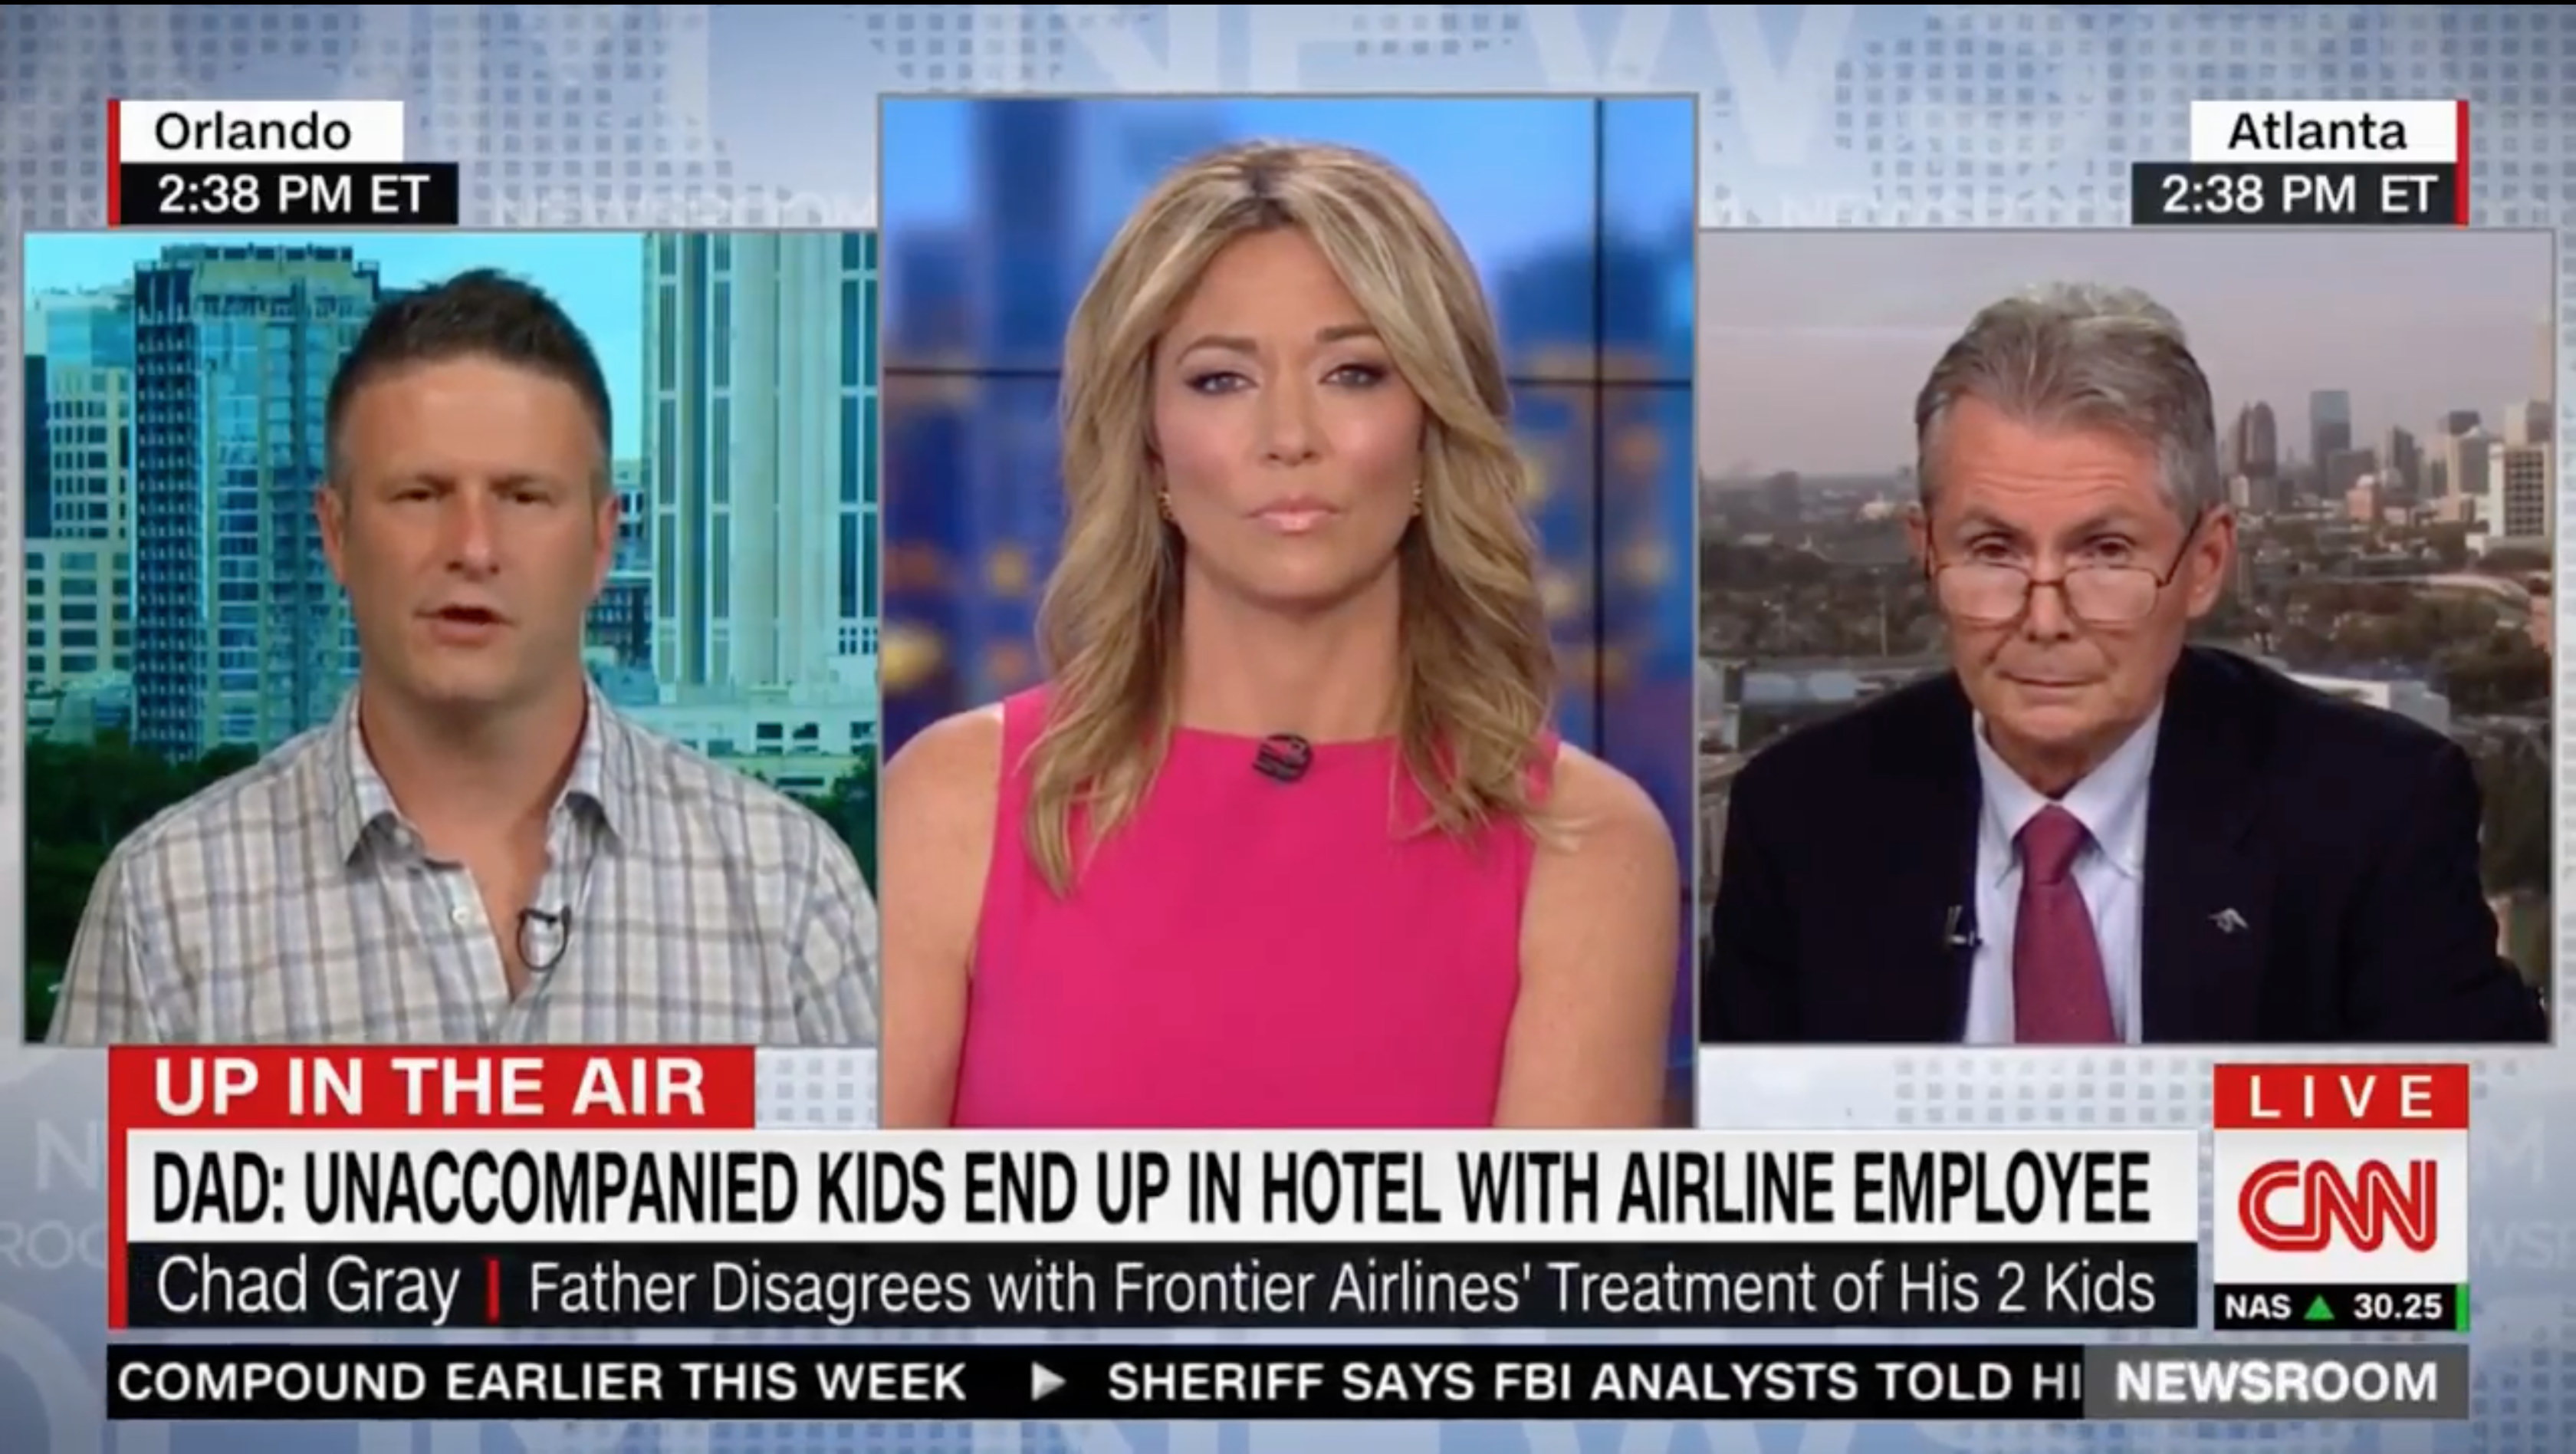 Interview on CNN TV about flight diverted with unaccompanied minors on board